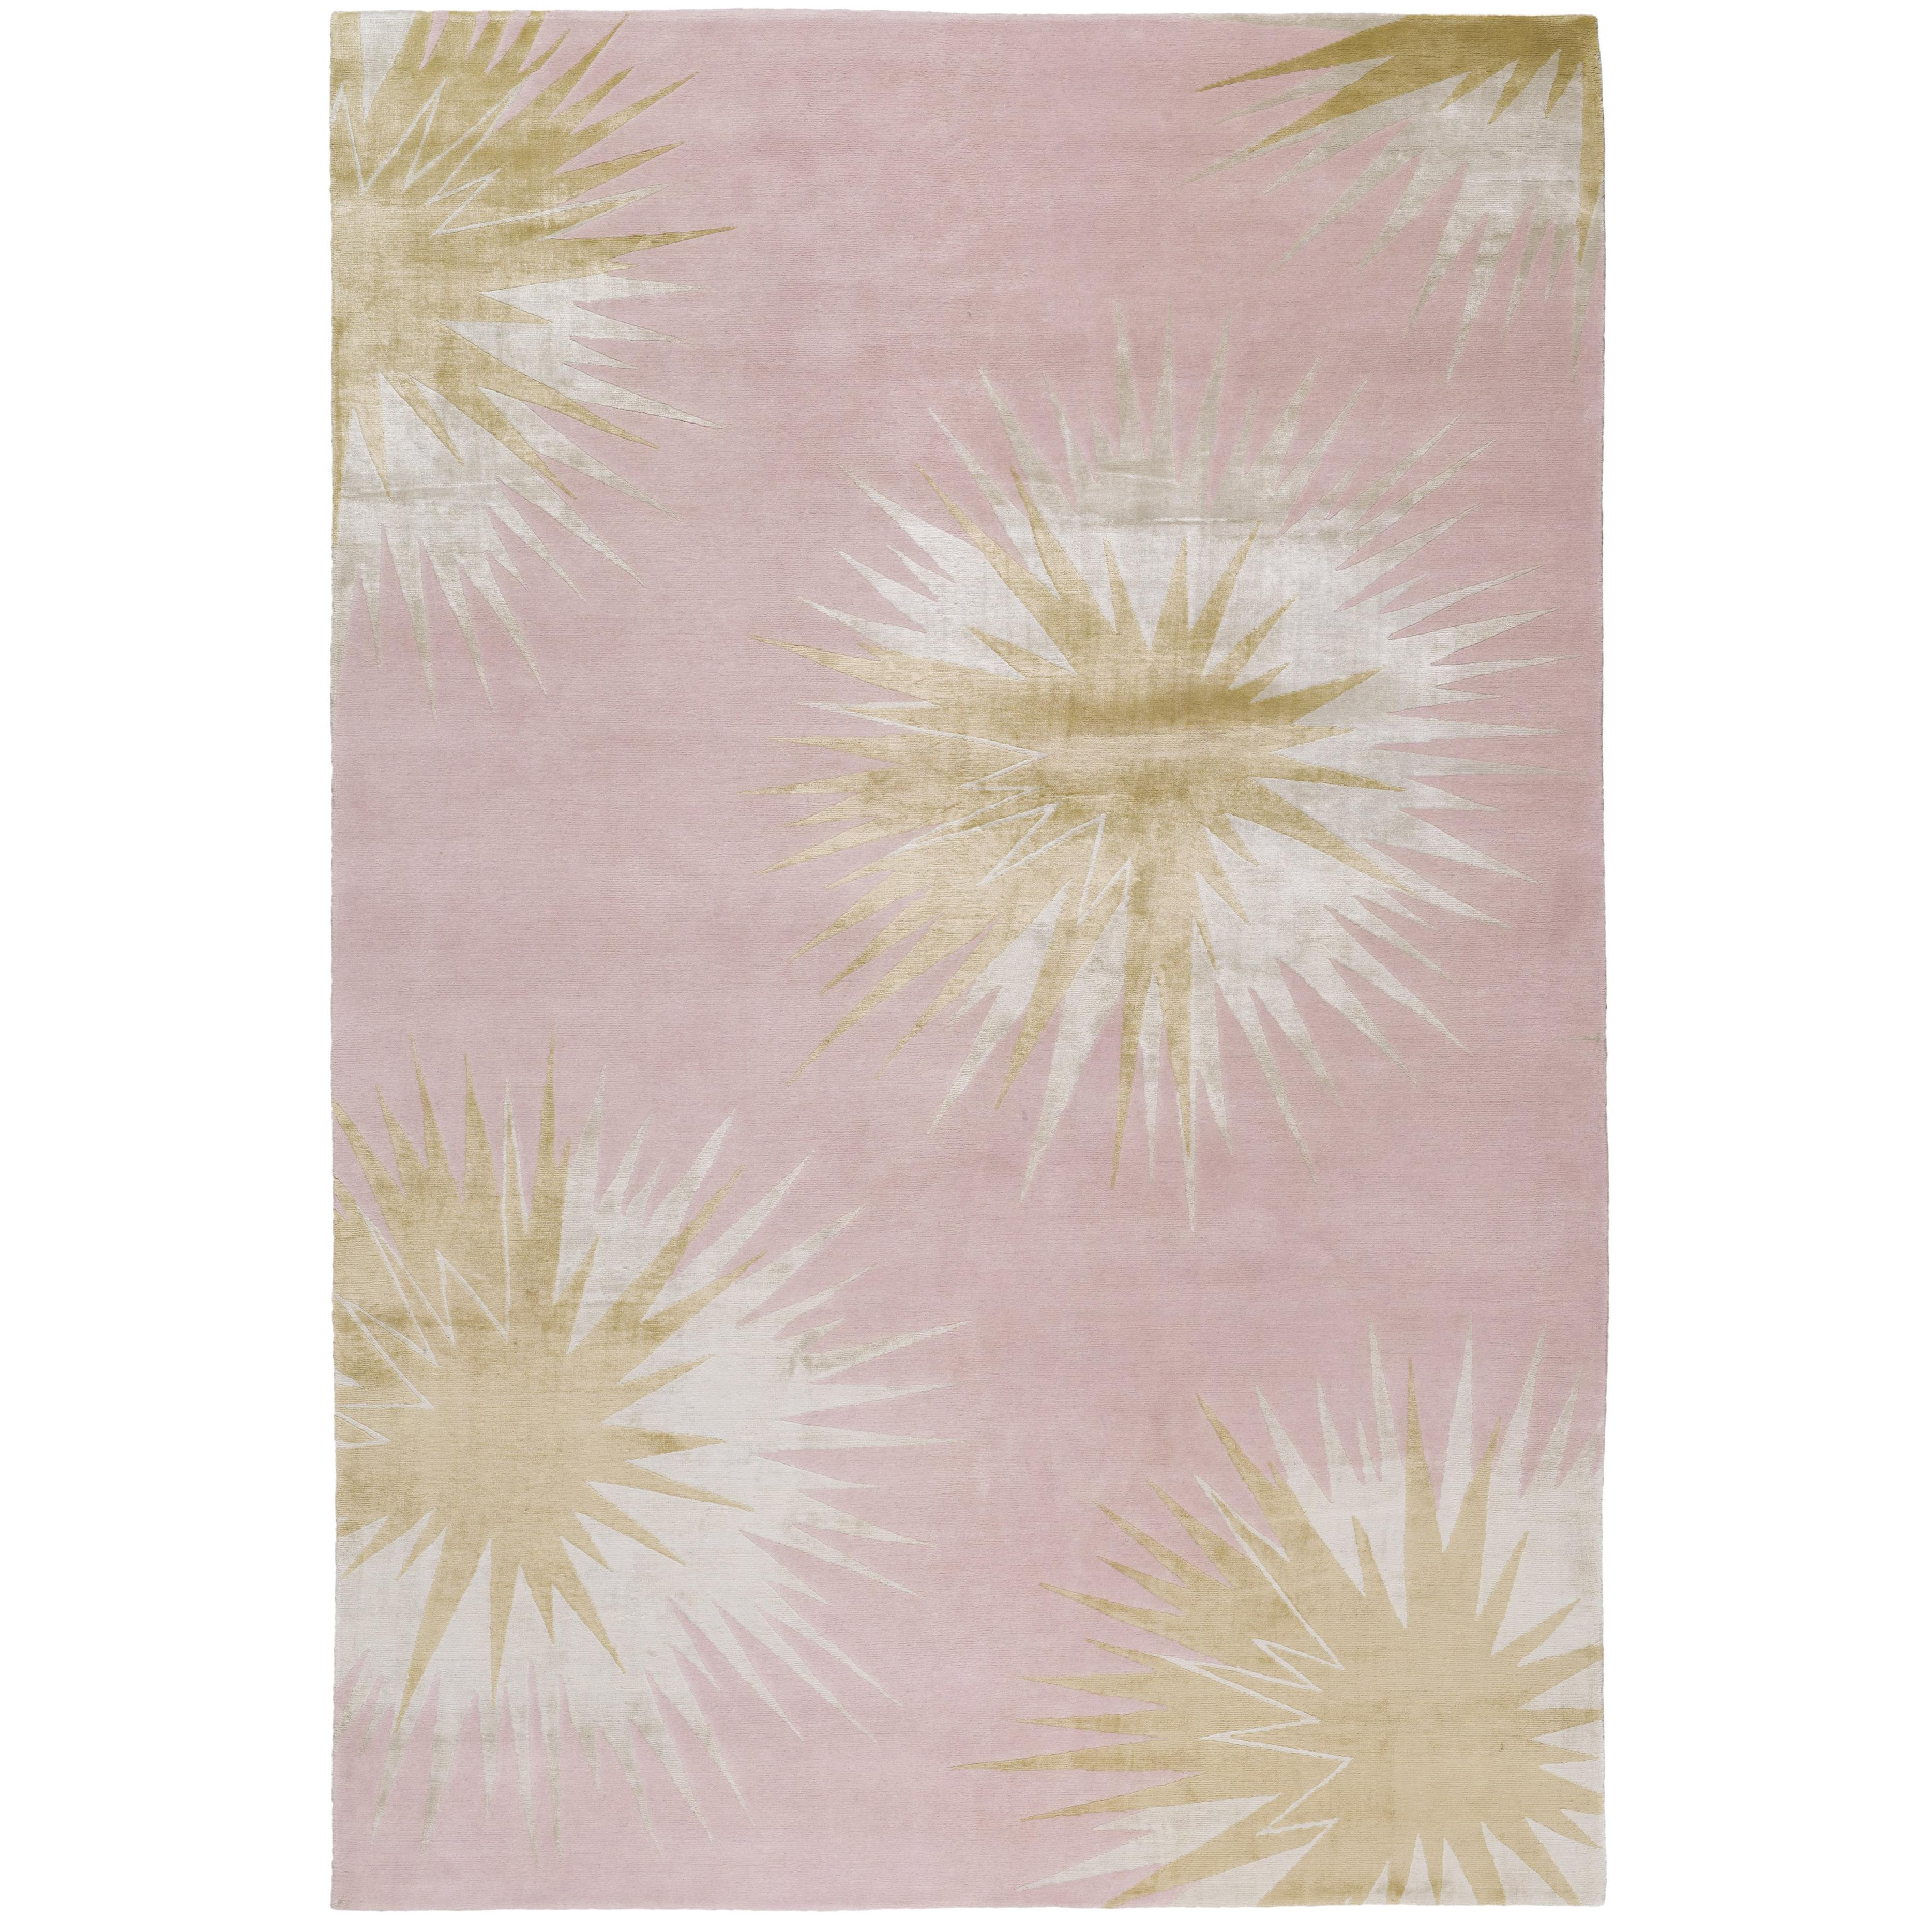 Thistle Gold Hand Knotted 6x4 Floor Rug In Wool And Silk By Vivienne  Westwood